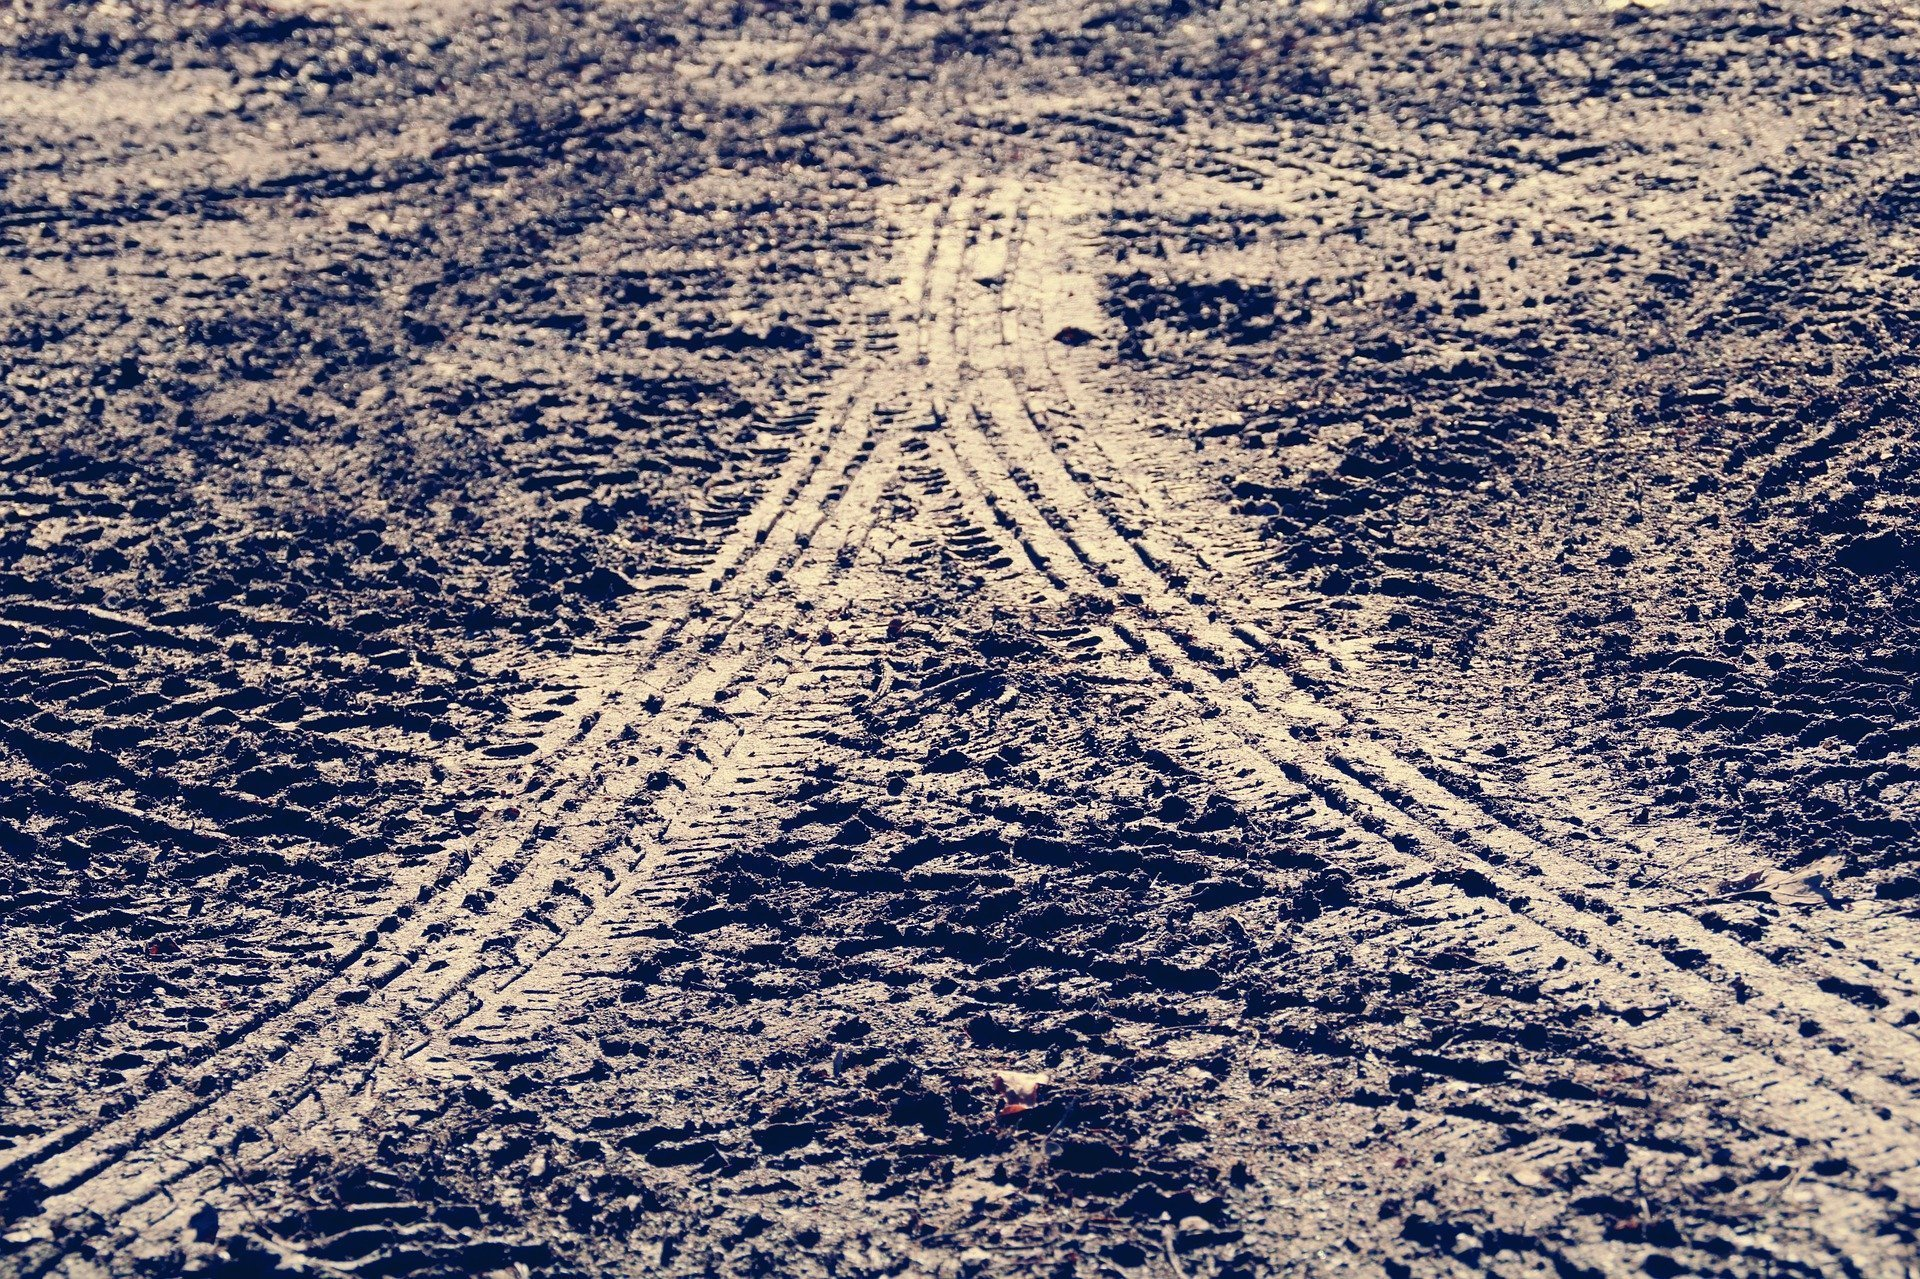 Reasons For Owning A Four Wheel Drive Vehicle